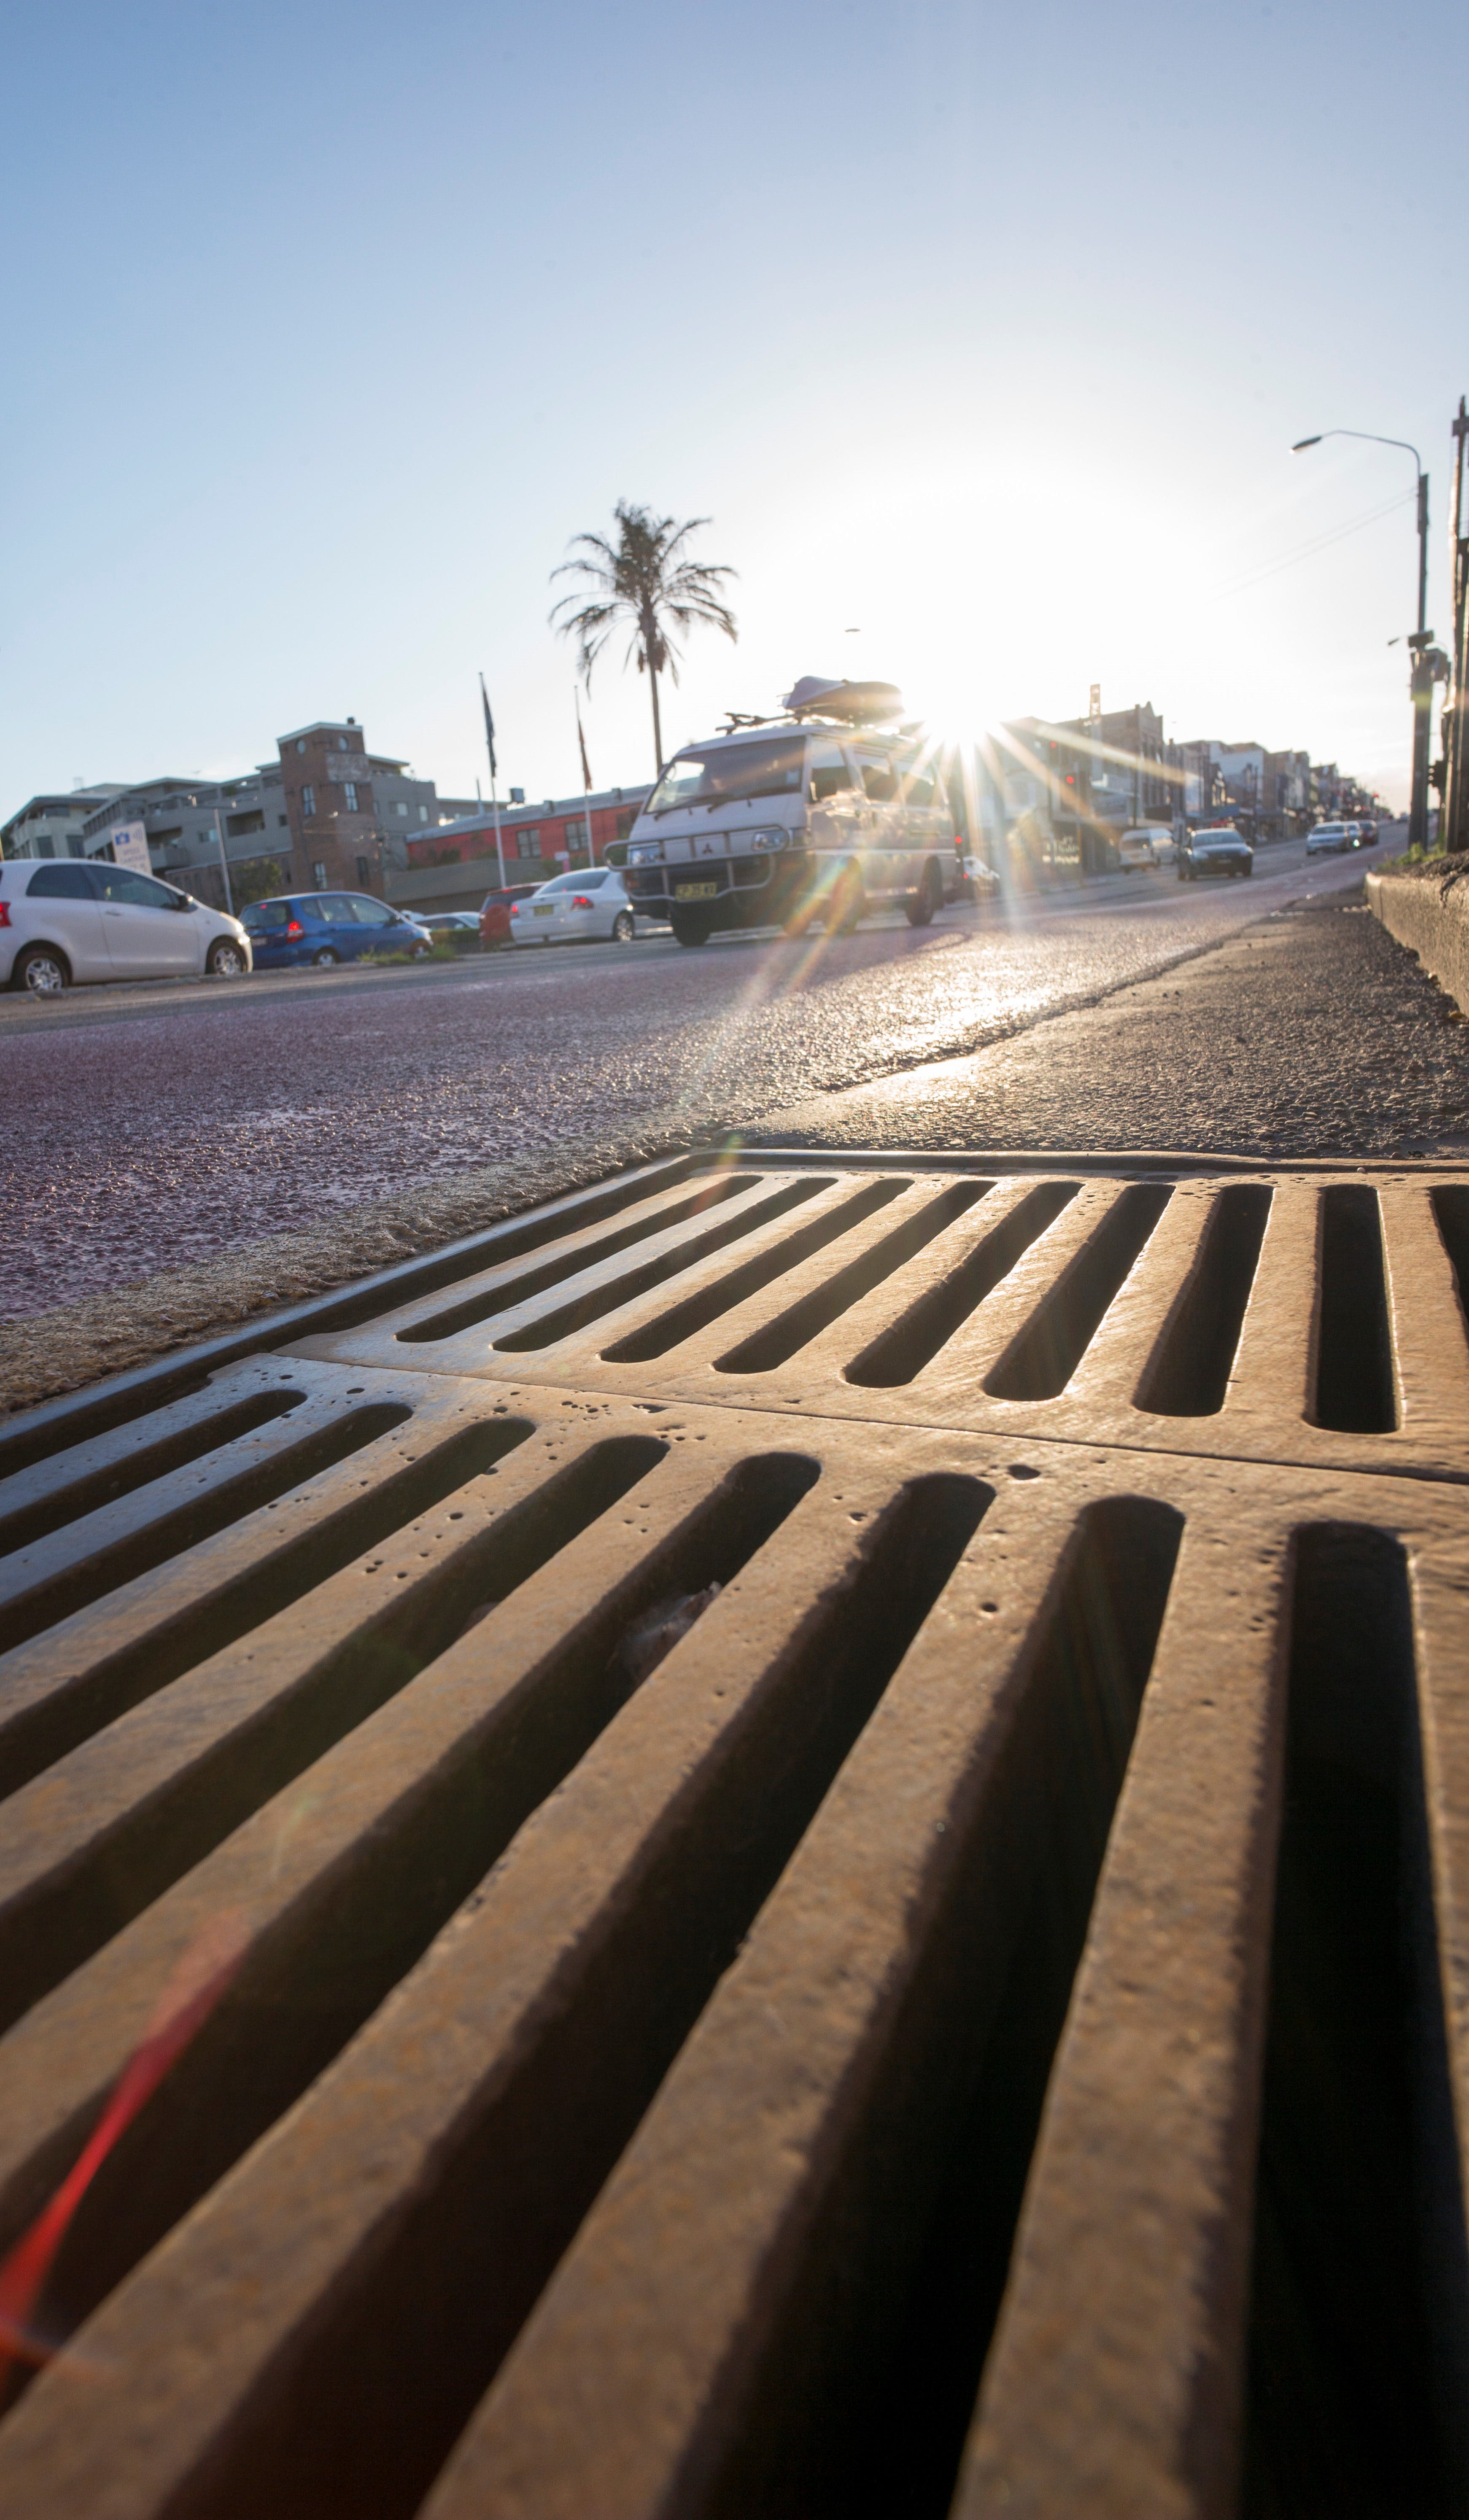 Stormwater drain on a road